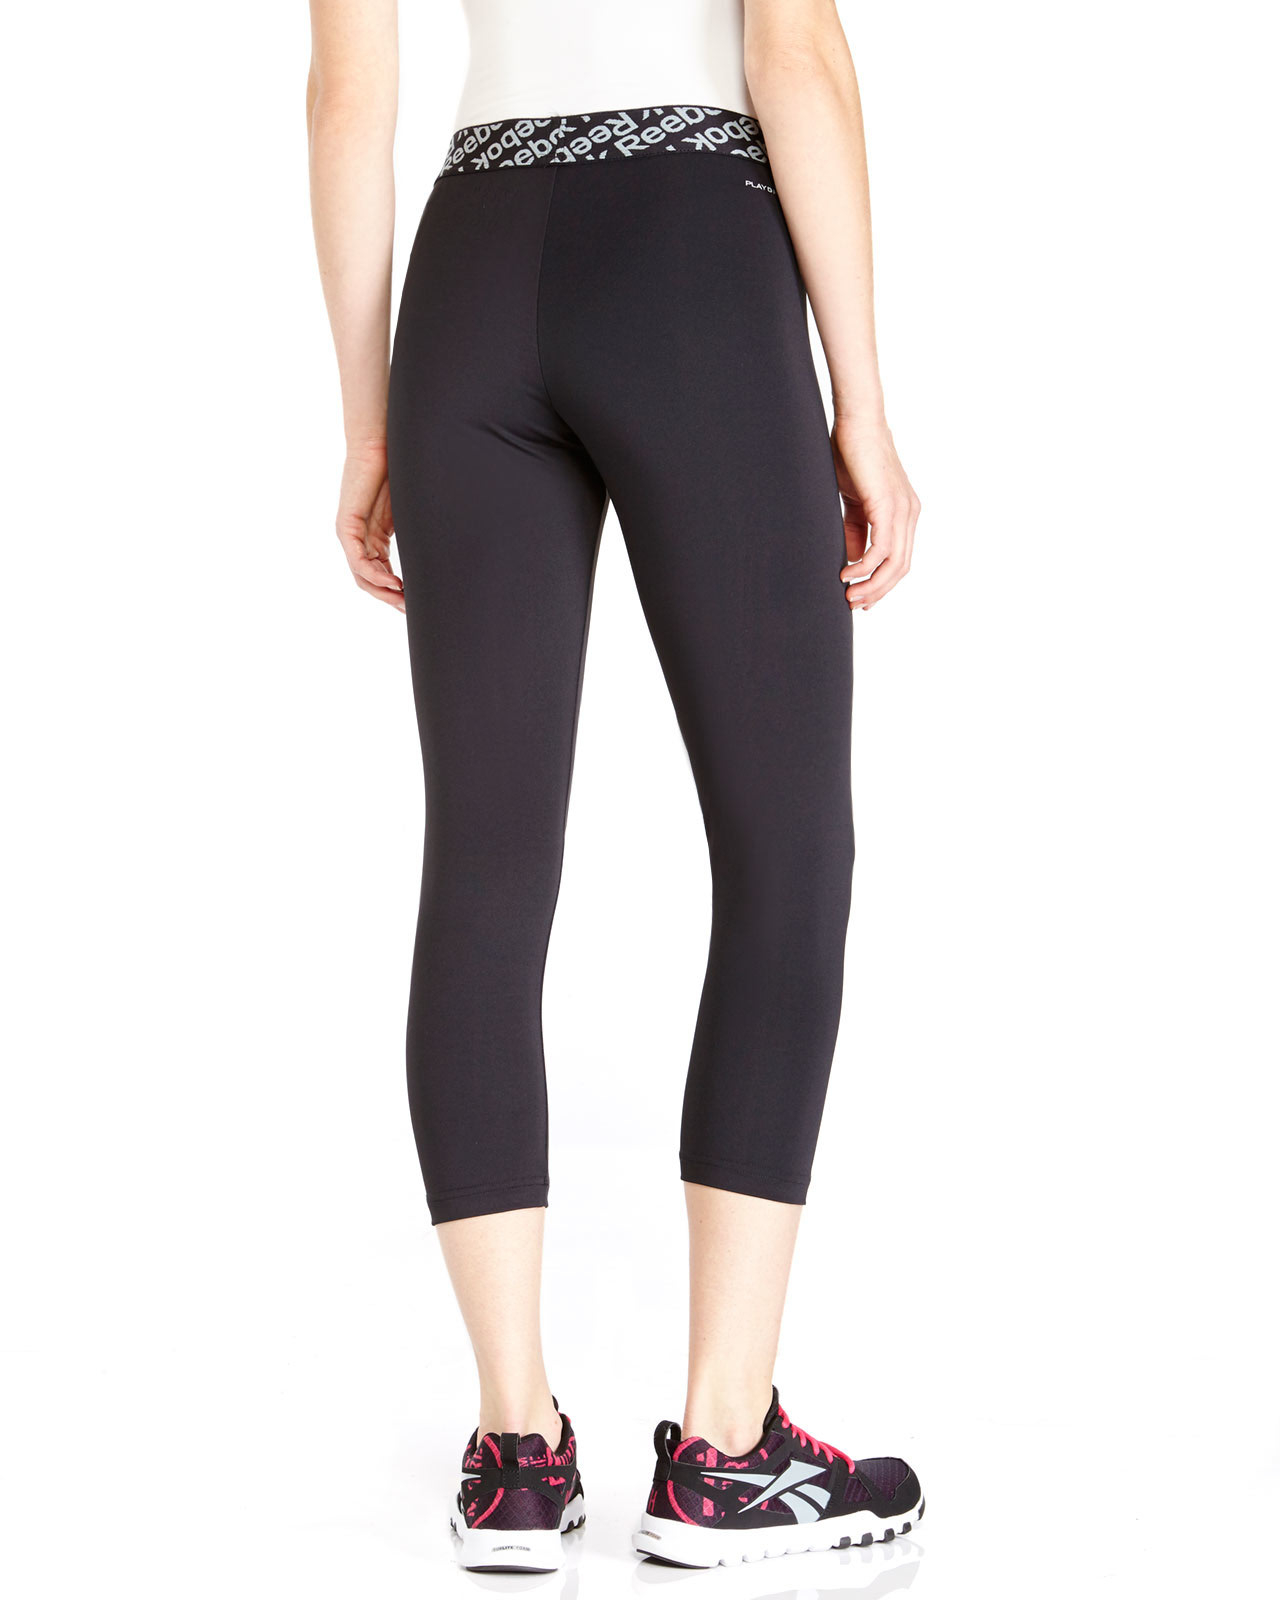 Reebok Black Logo Band Athletic Capri Pants in Black | Lyst